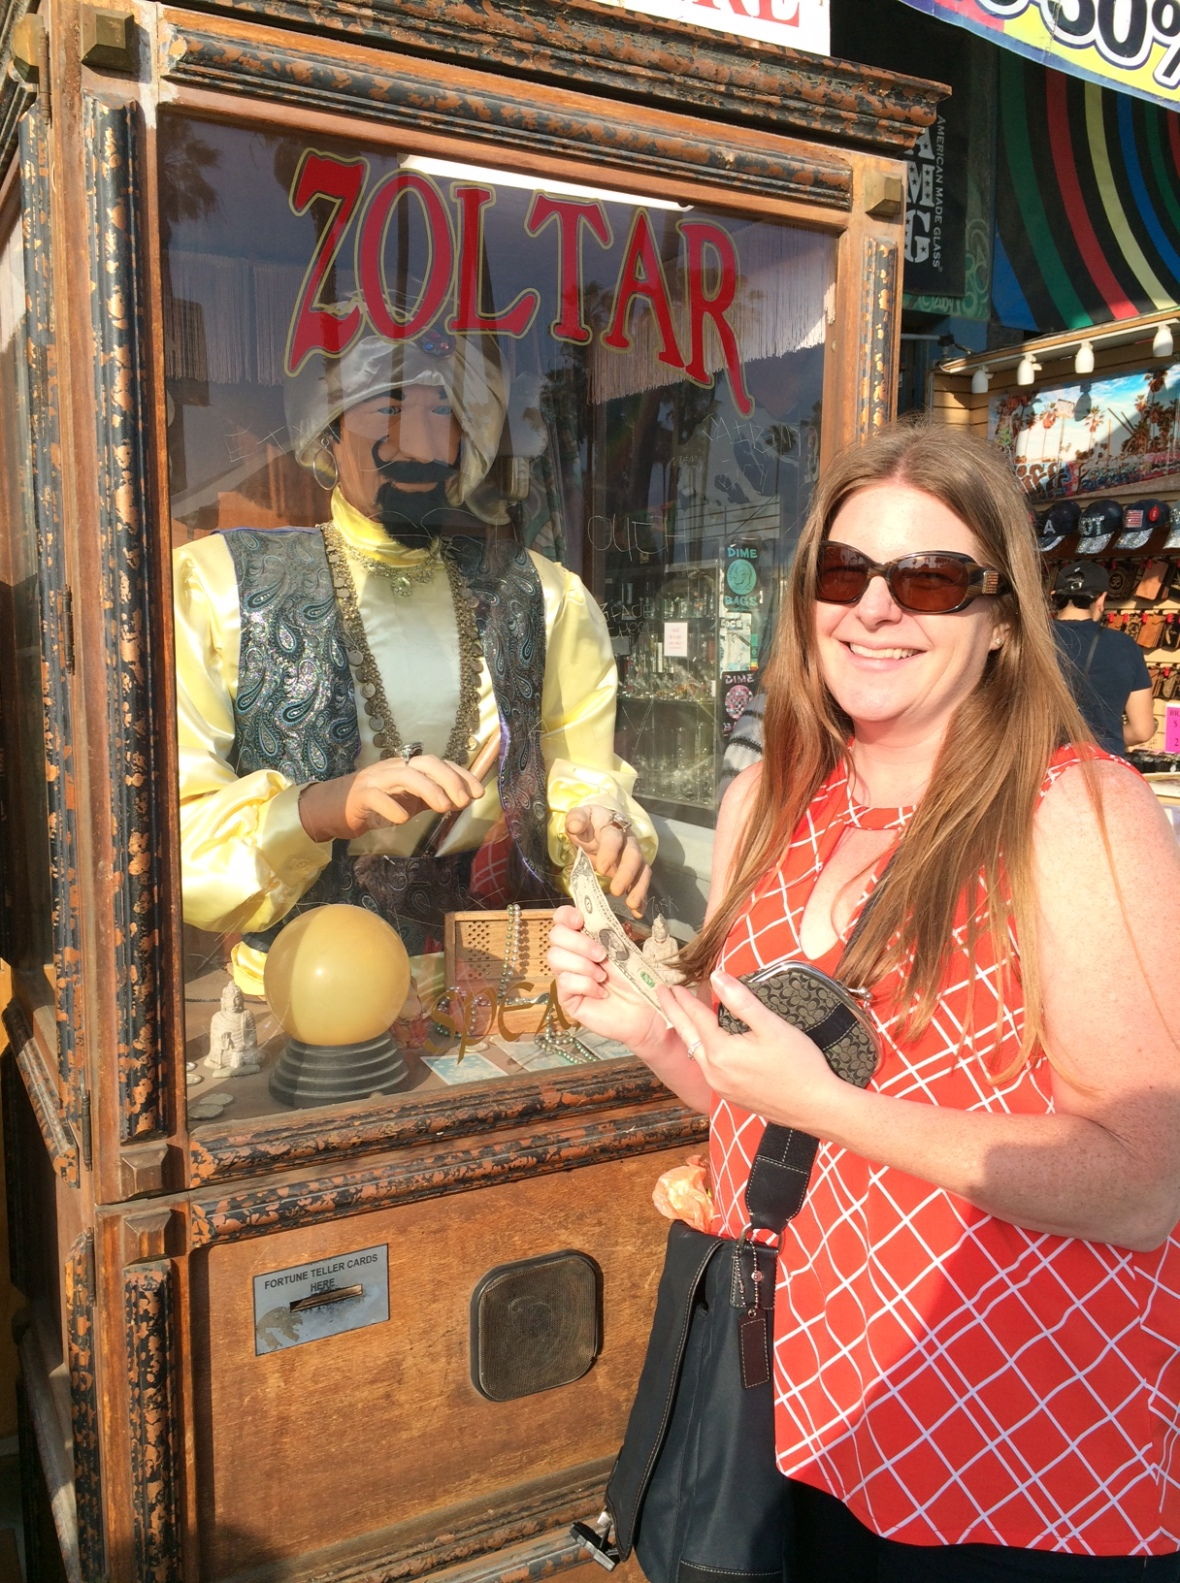 Zoltar gave me a great fortune!